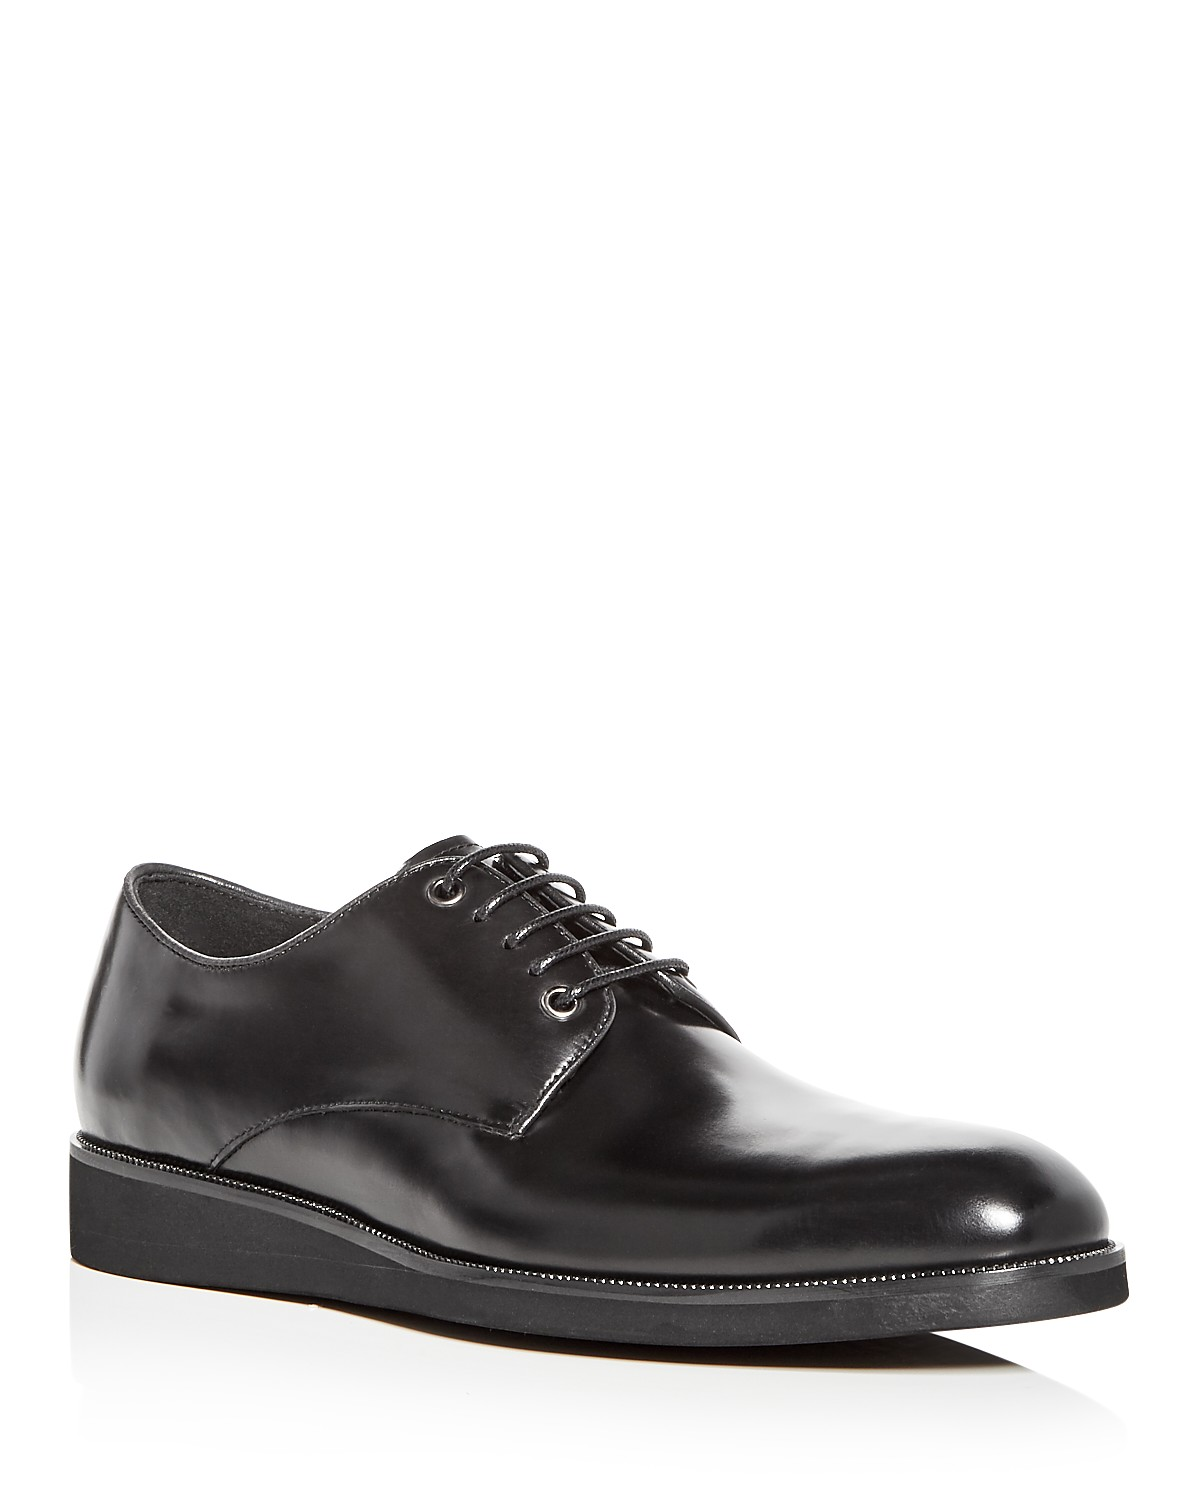 Karl Lagerfeld Men's Plain Toe Oxford ggv6UicxZo